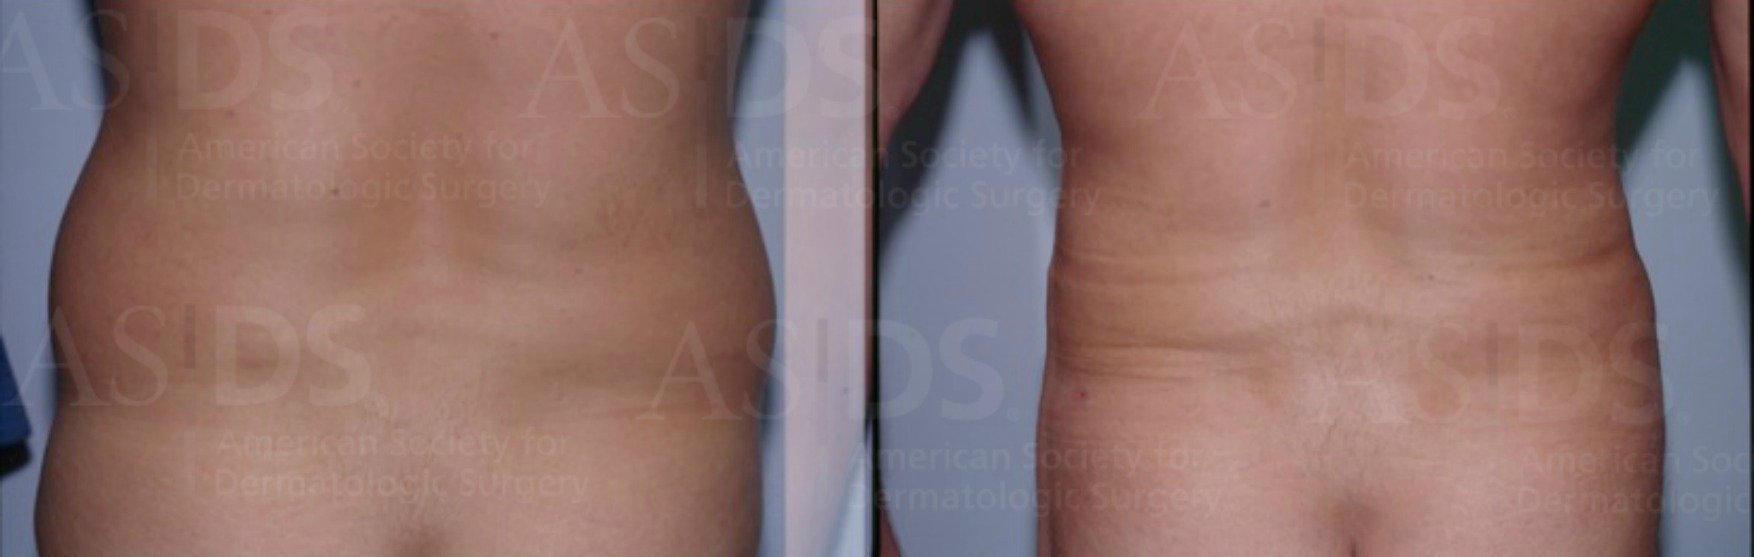 Before (left) and after (right) 6 months after tumescent liposuction - love handles.